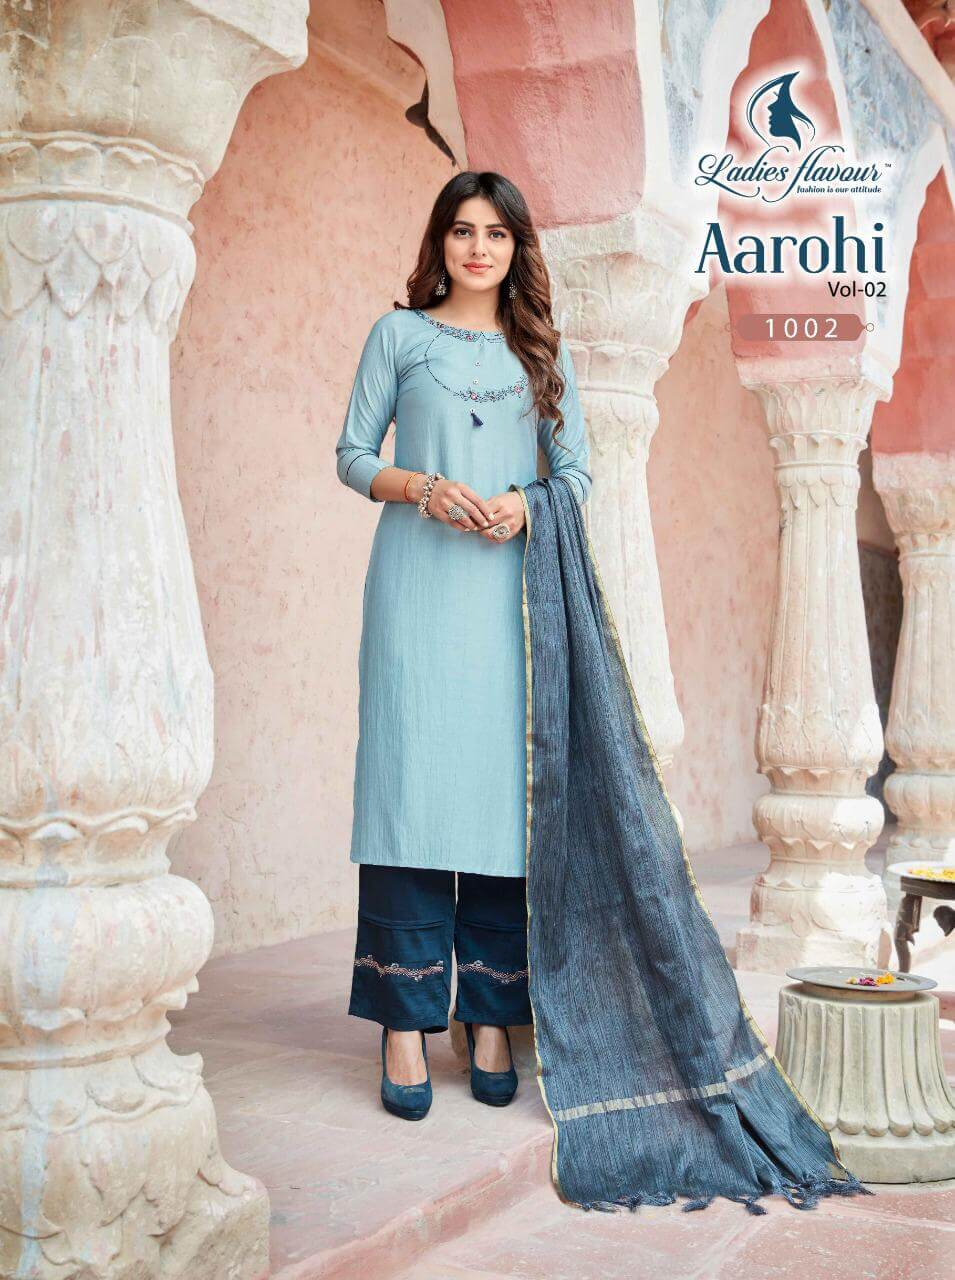 Ladies Flavour Aarohi Vol 2 collection 10